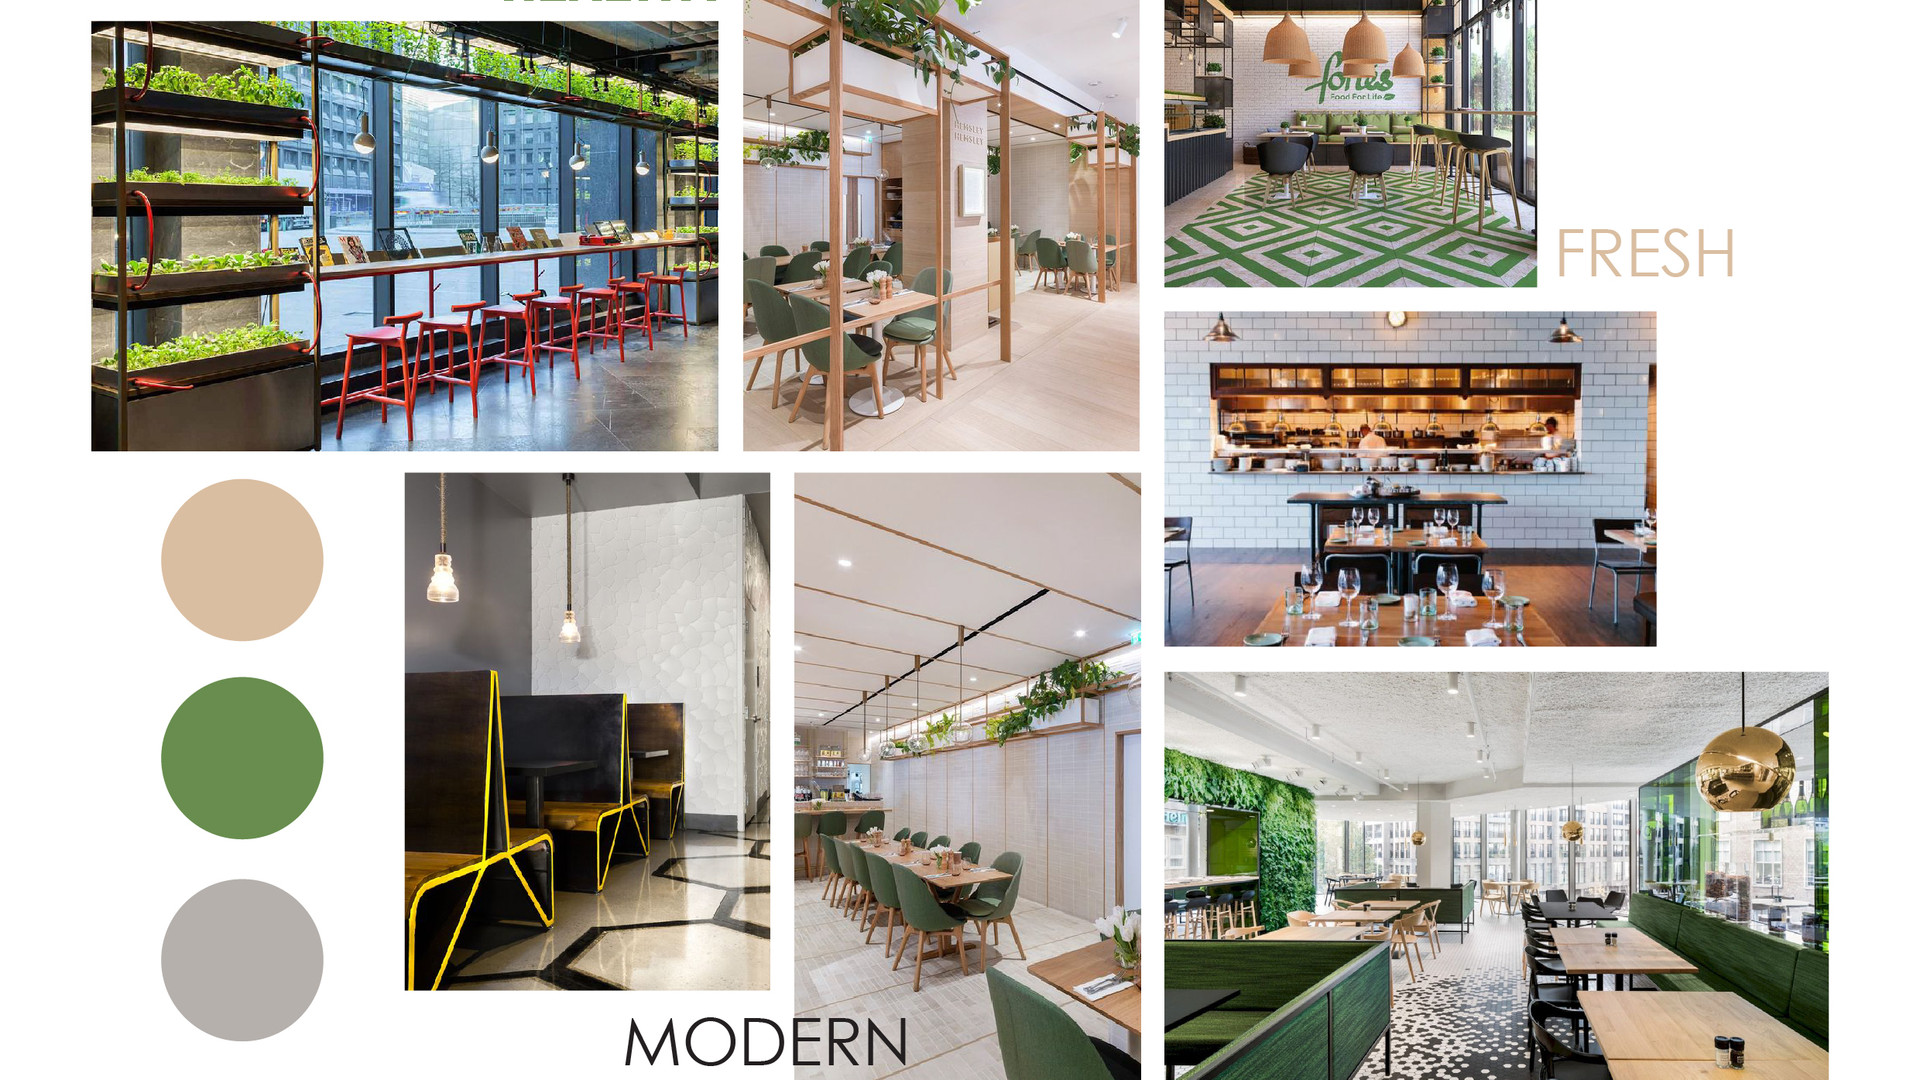 Restaurant Concept - Mood Board